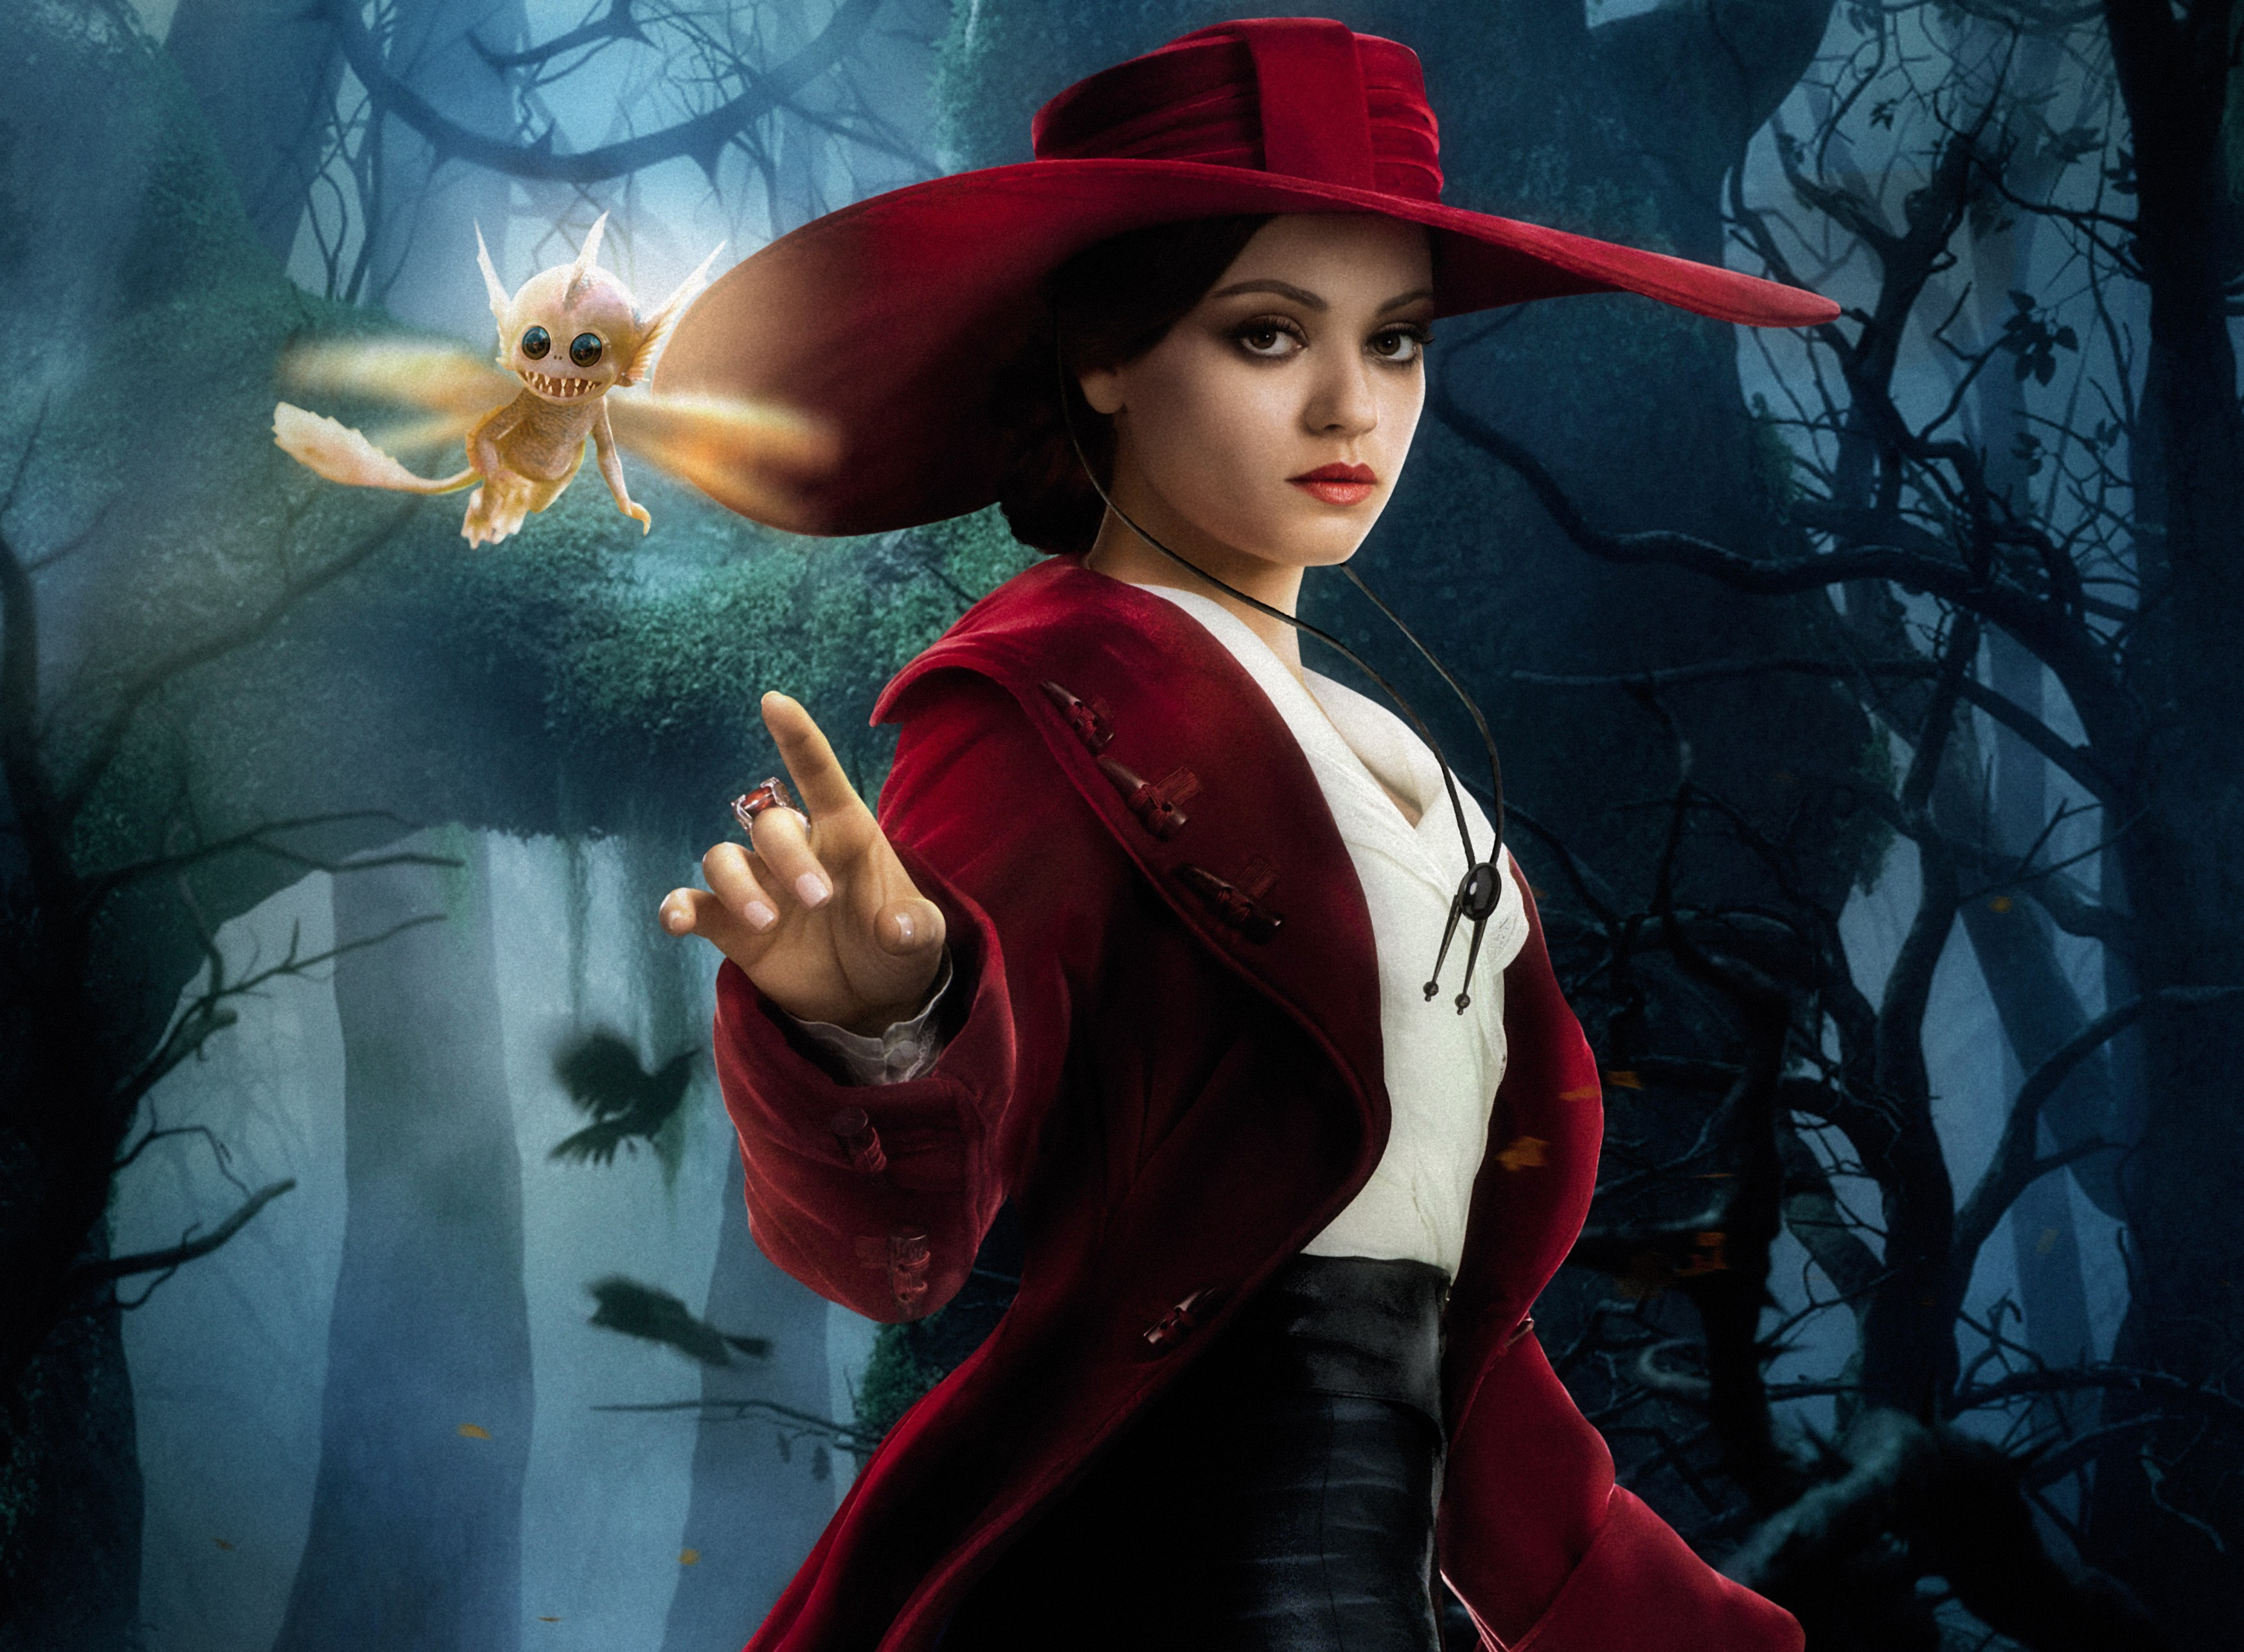 mila kunis oz the great and powerful hat movies girls